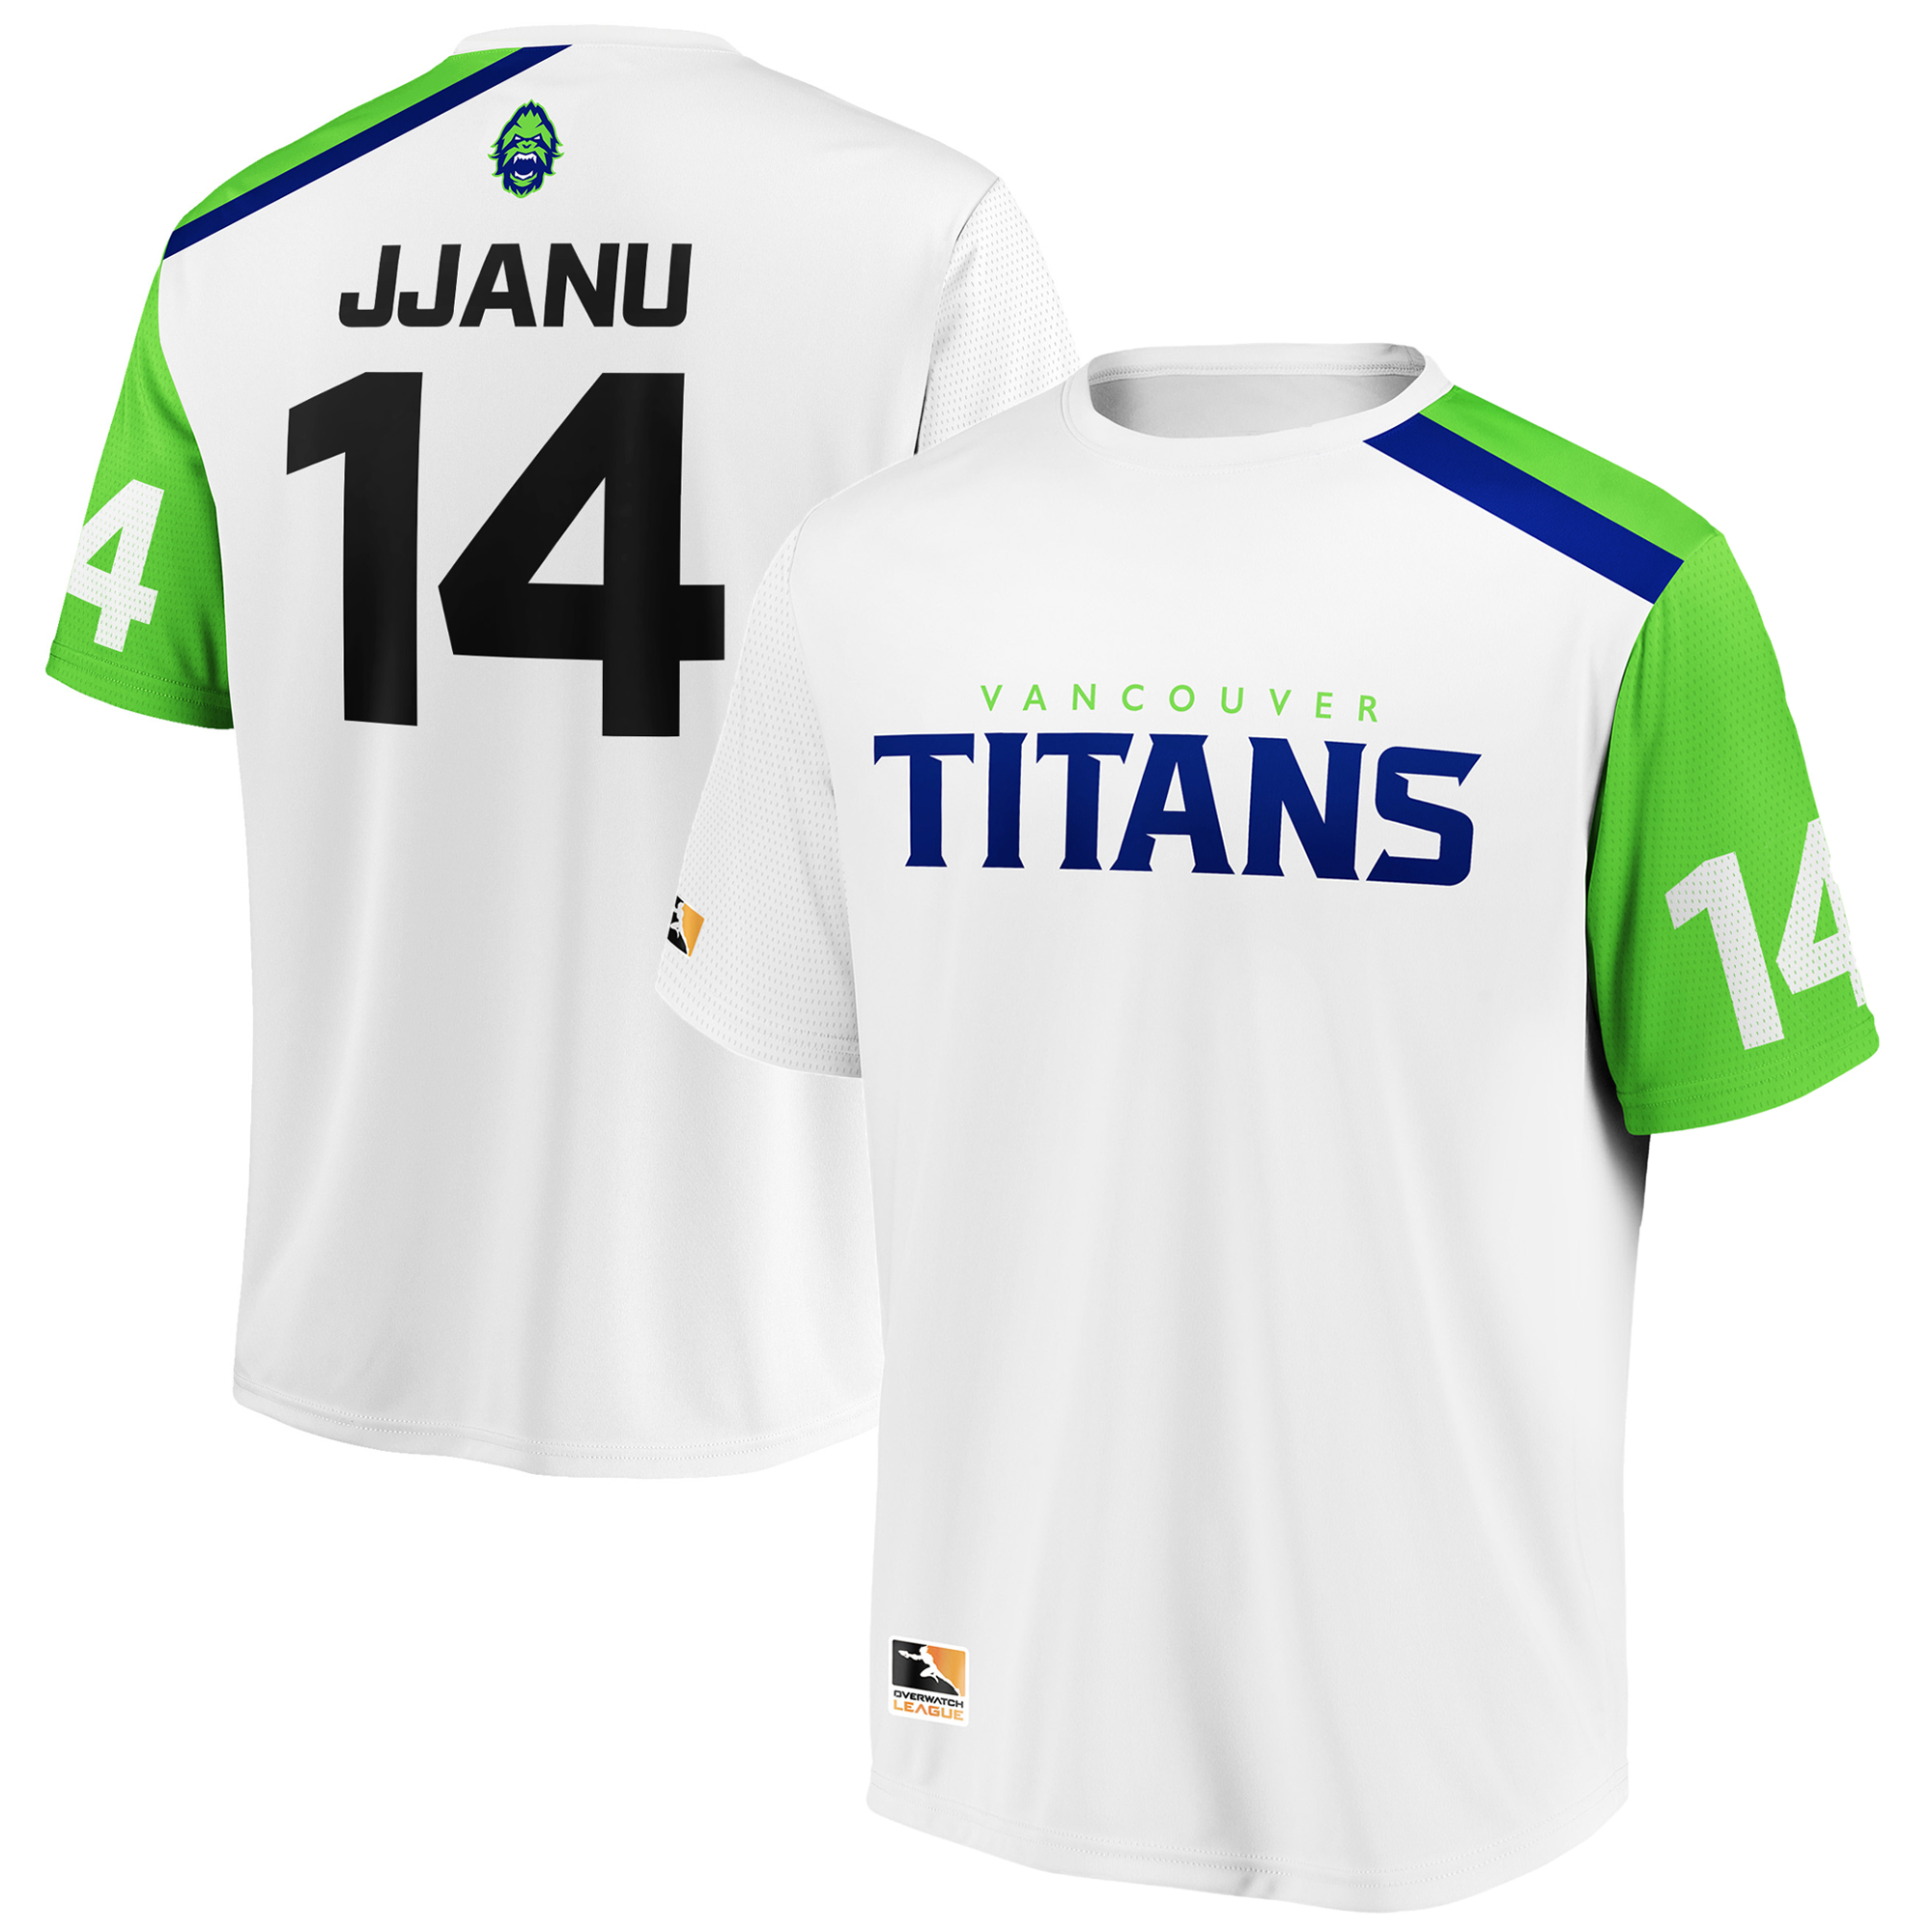 JJANU Vancouver Titans Overwatch League Replica Away Jersey - White